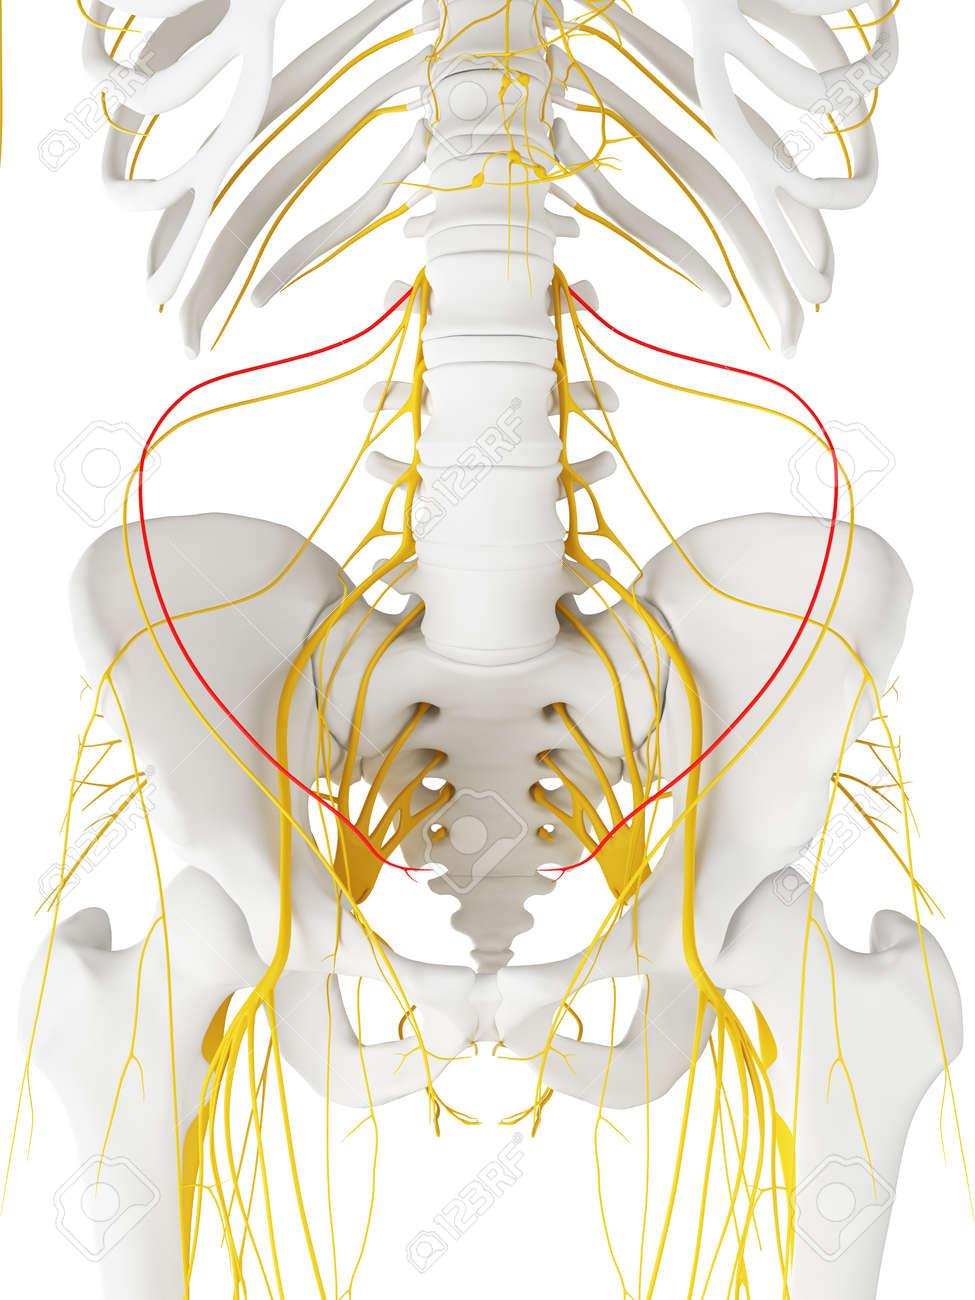 hight resolution of 3d rendered medically accurate illustration of the iliohypogastric nerve stock illustration 87650828